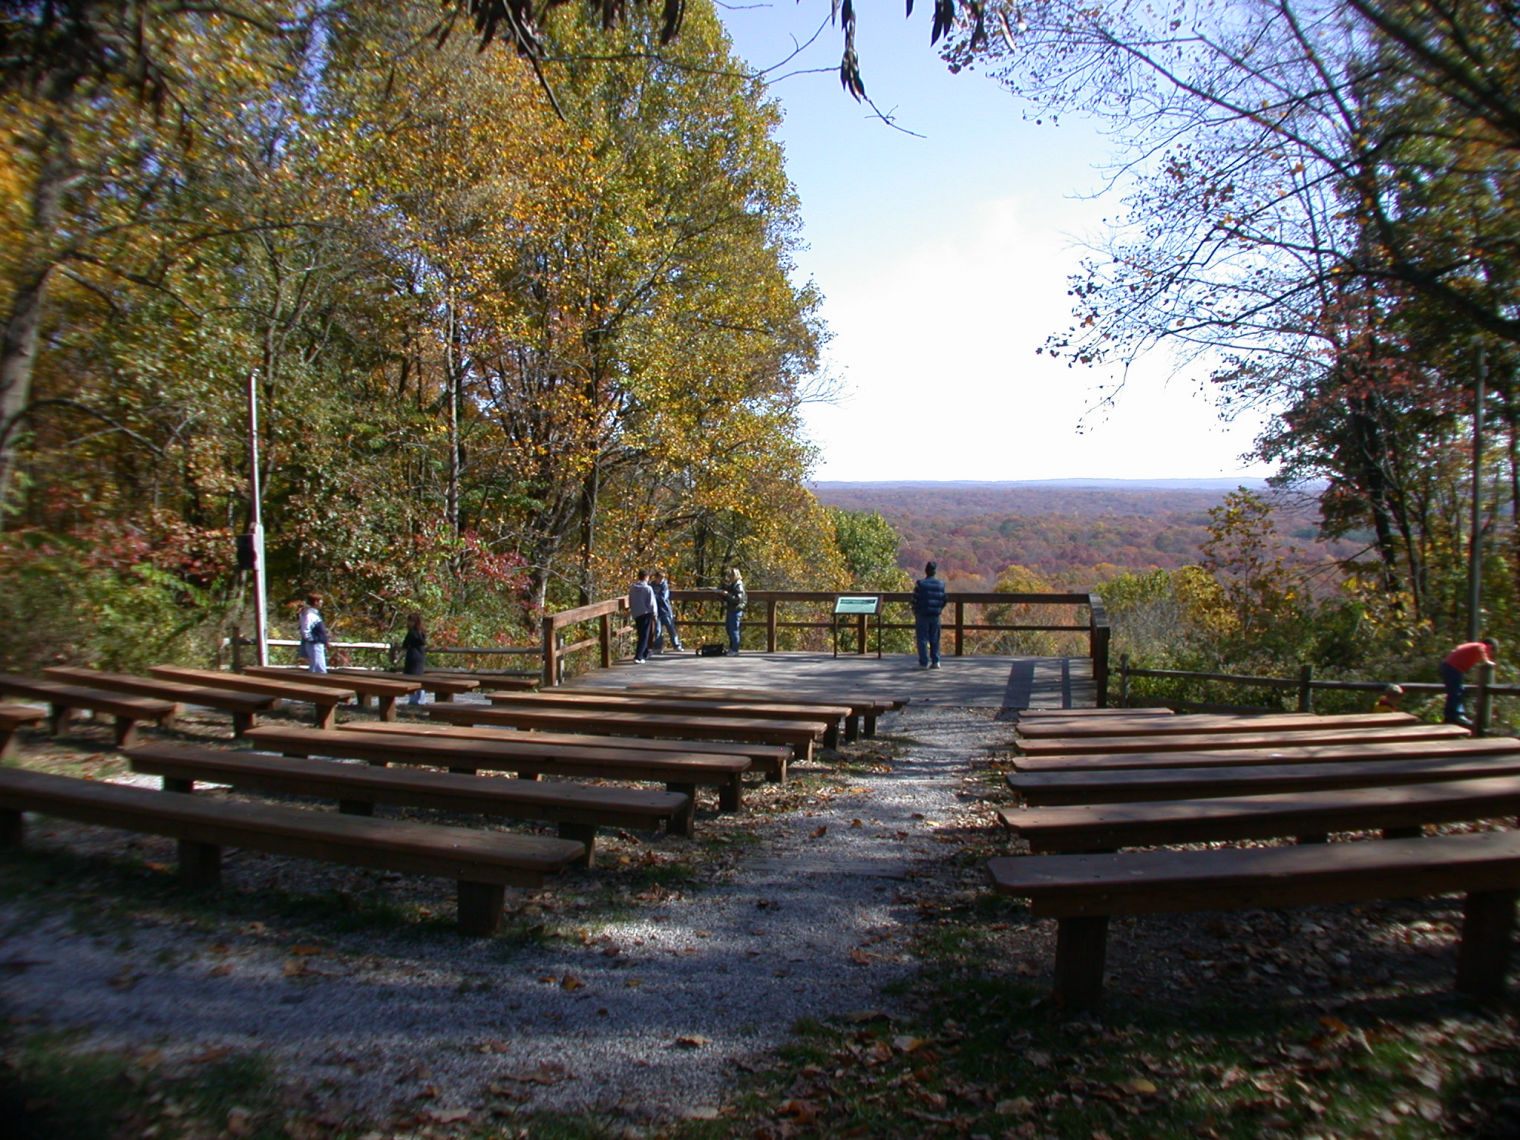 Amphitheater at the Nature Center